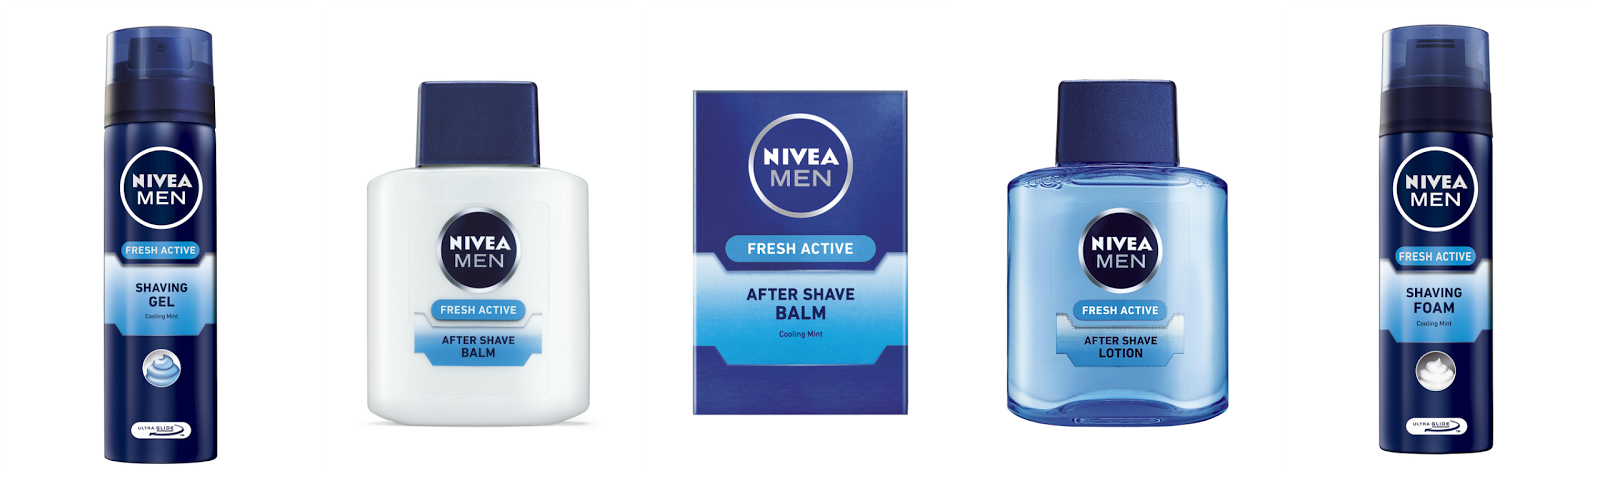 PR:Nivea Men Fresh Active Shaving Range